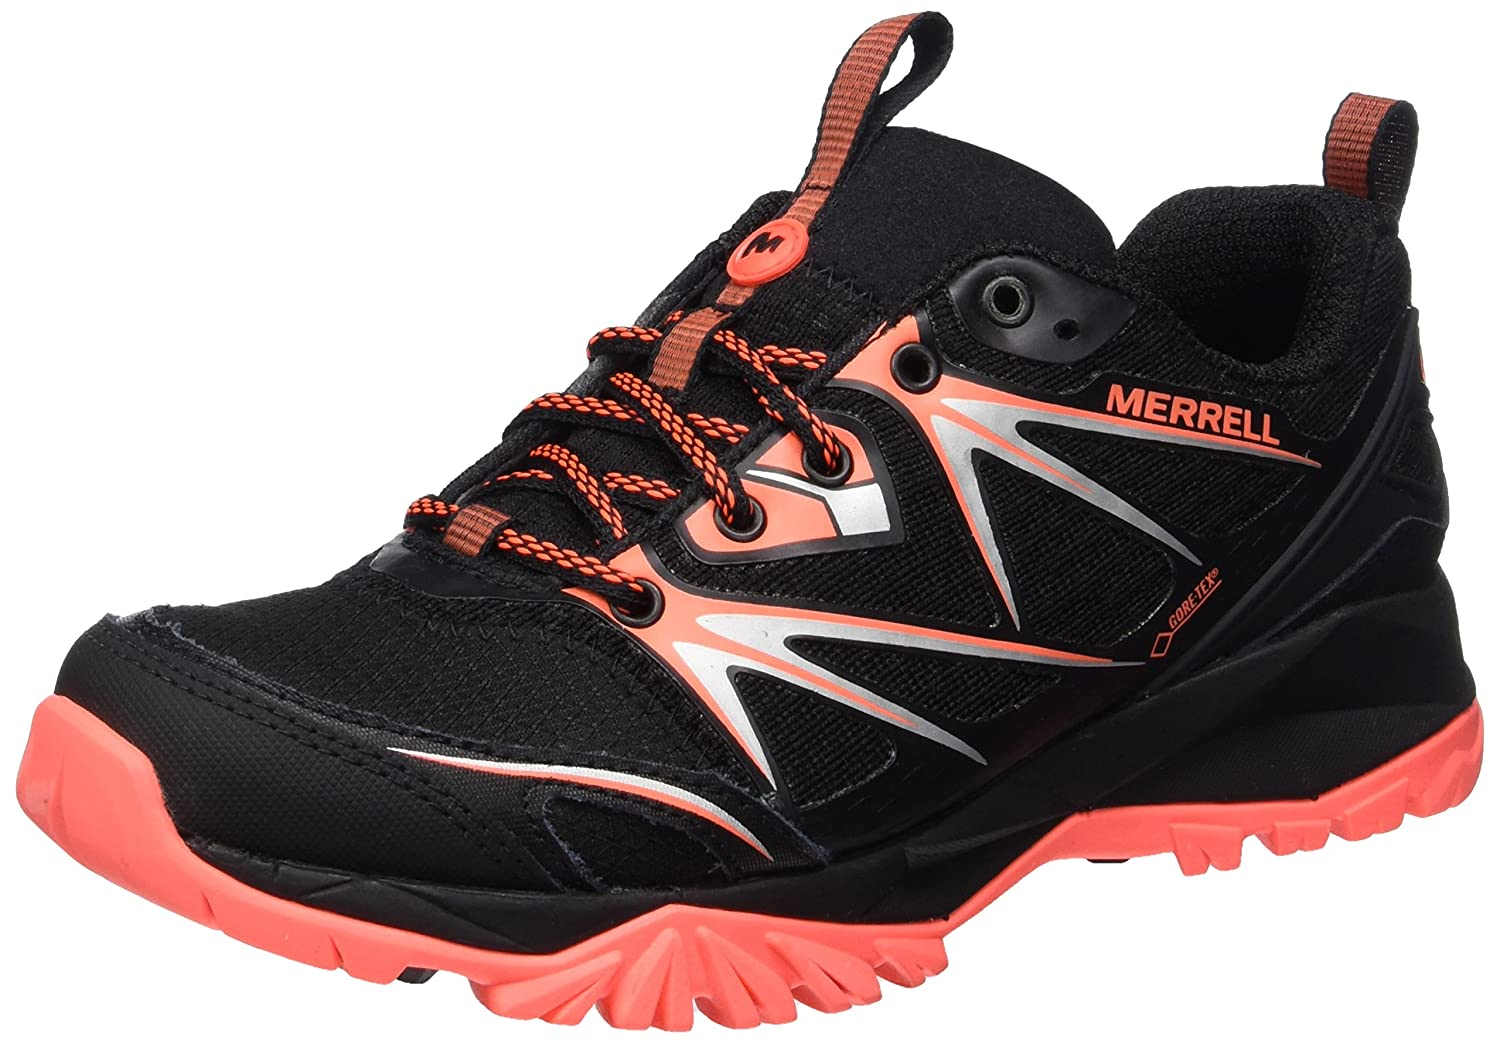 Merrell Women's Capra Bolt Gore Tex Low Rise Hiking Shoes